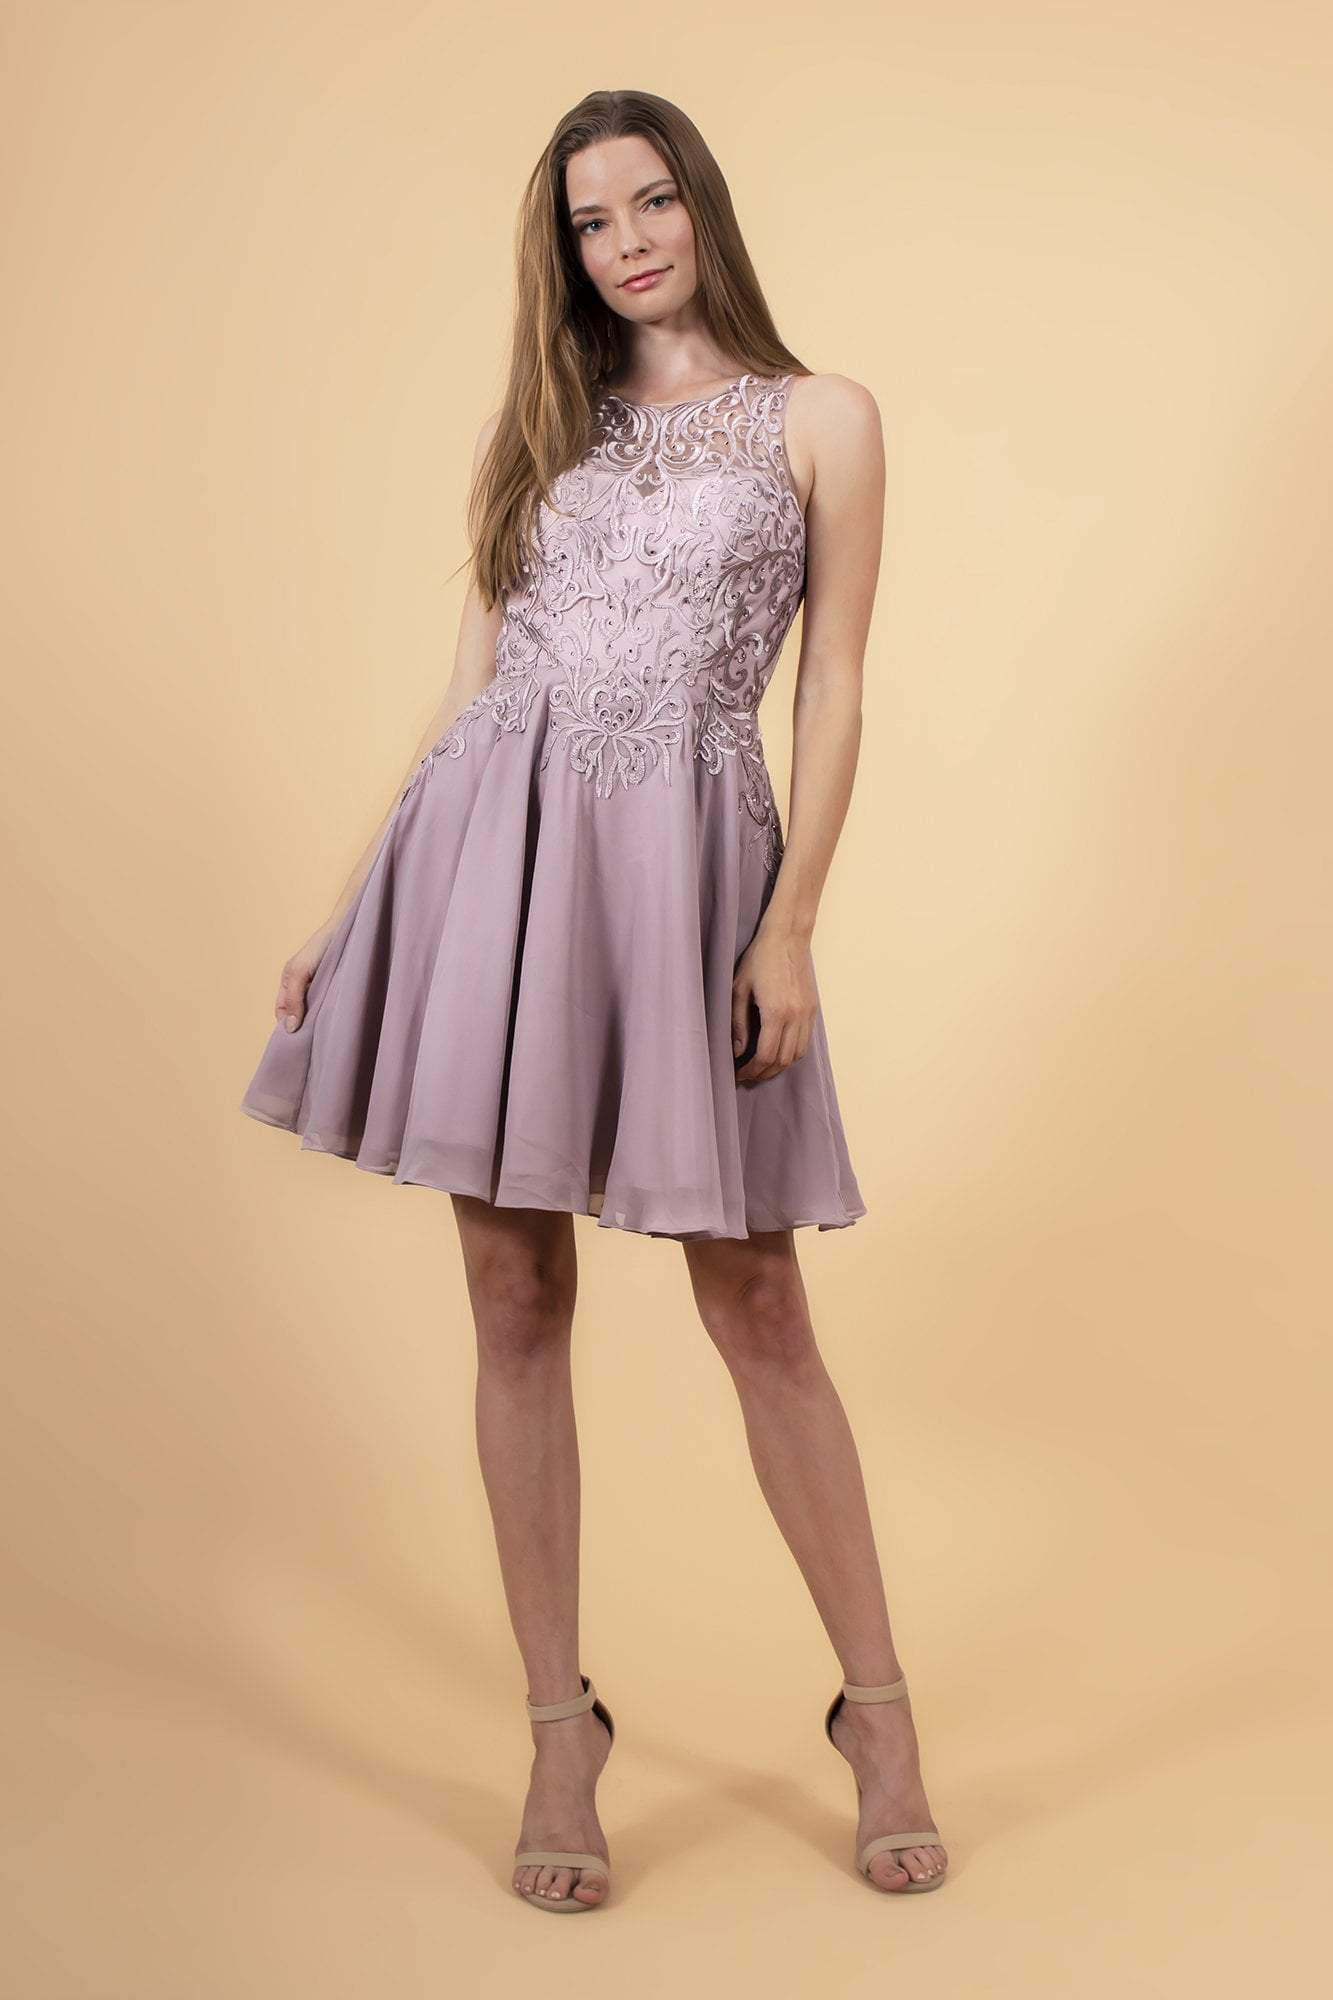 Elizabeth K - GS1618 Embroidered Swirl Motif Illusion Chiffon Dress Special Occasion Dress XS / Mauve